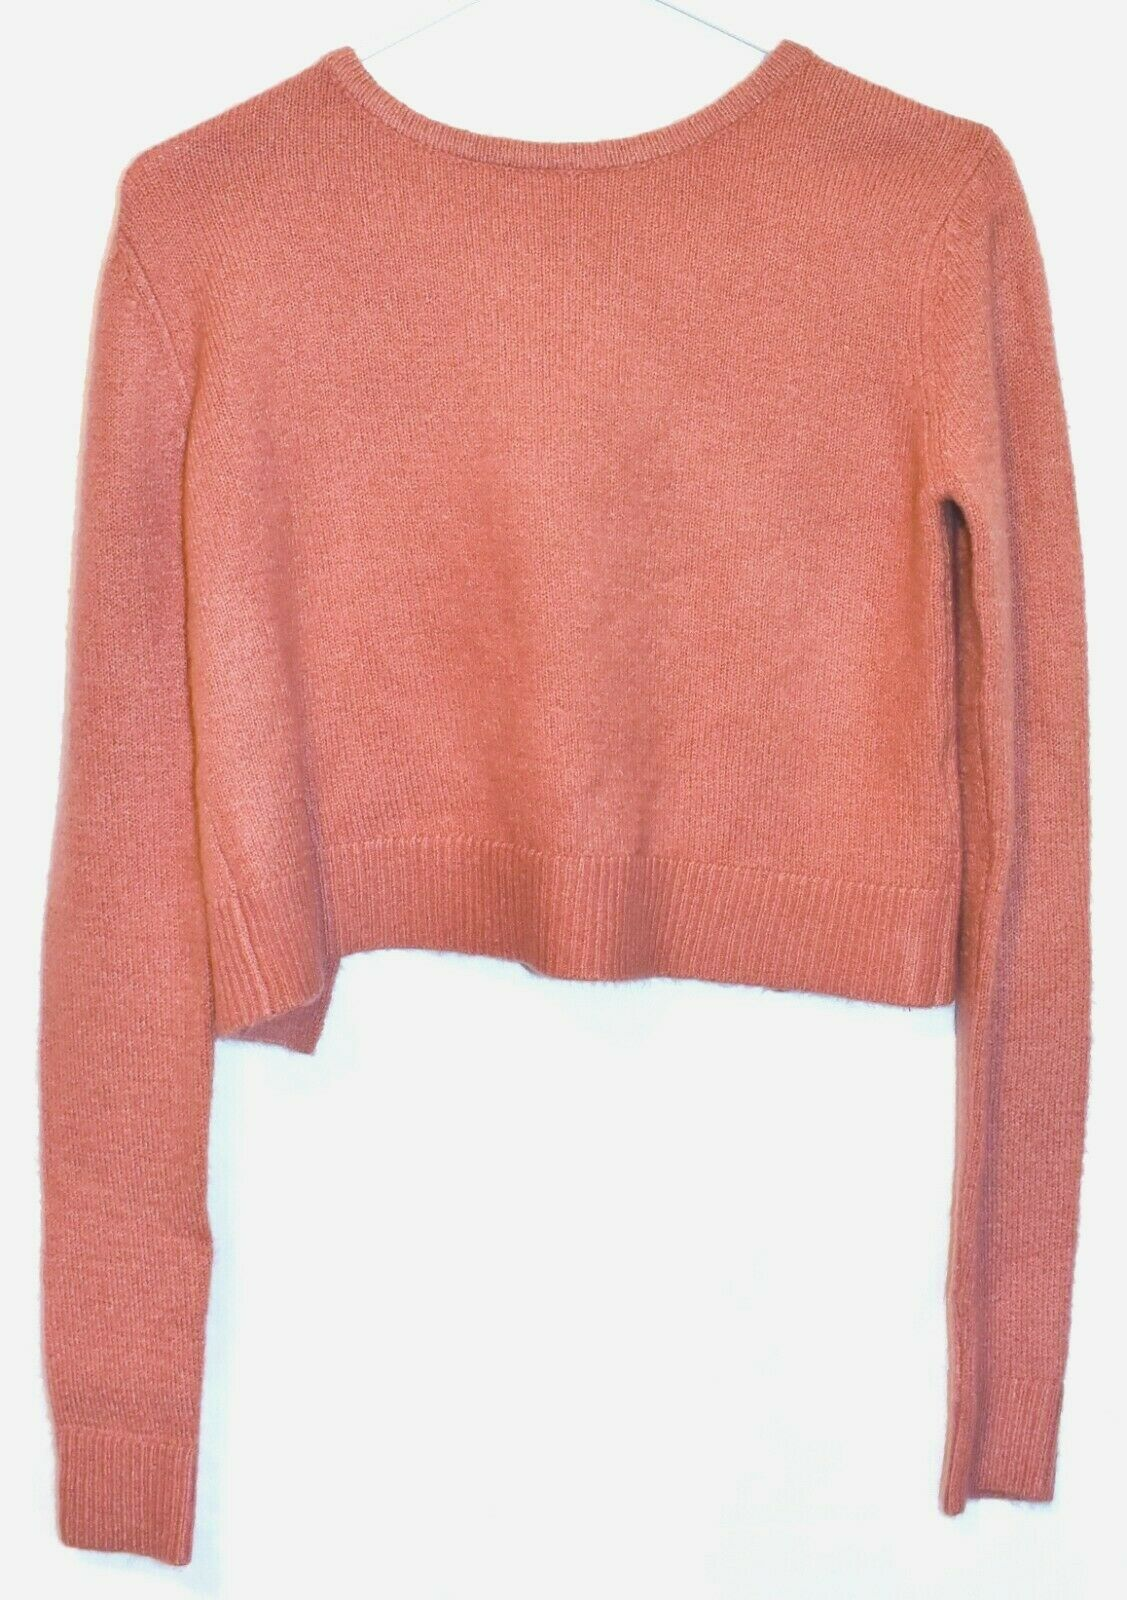 Forever 21 Contemporary Women's Rose Pink Tie-Back Crop Knit Sweater Size S